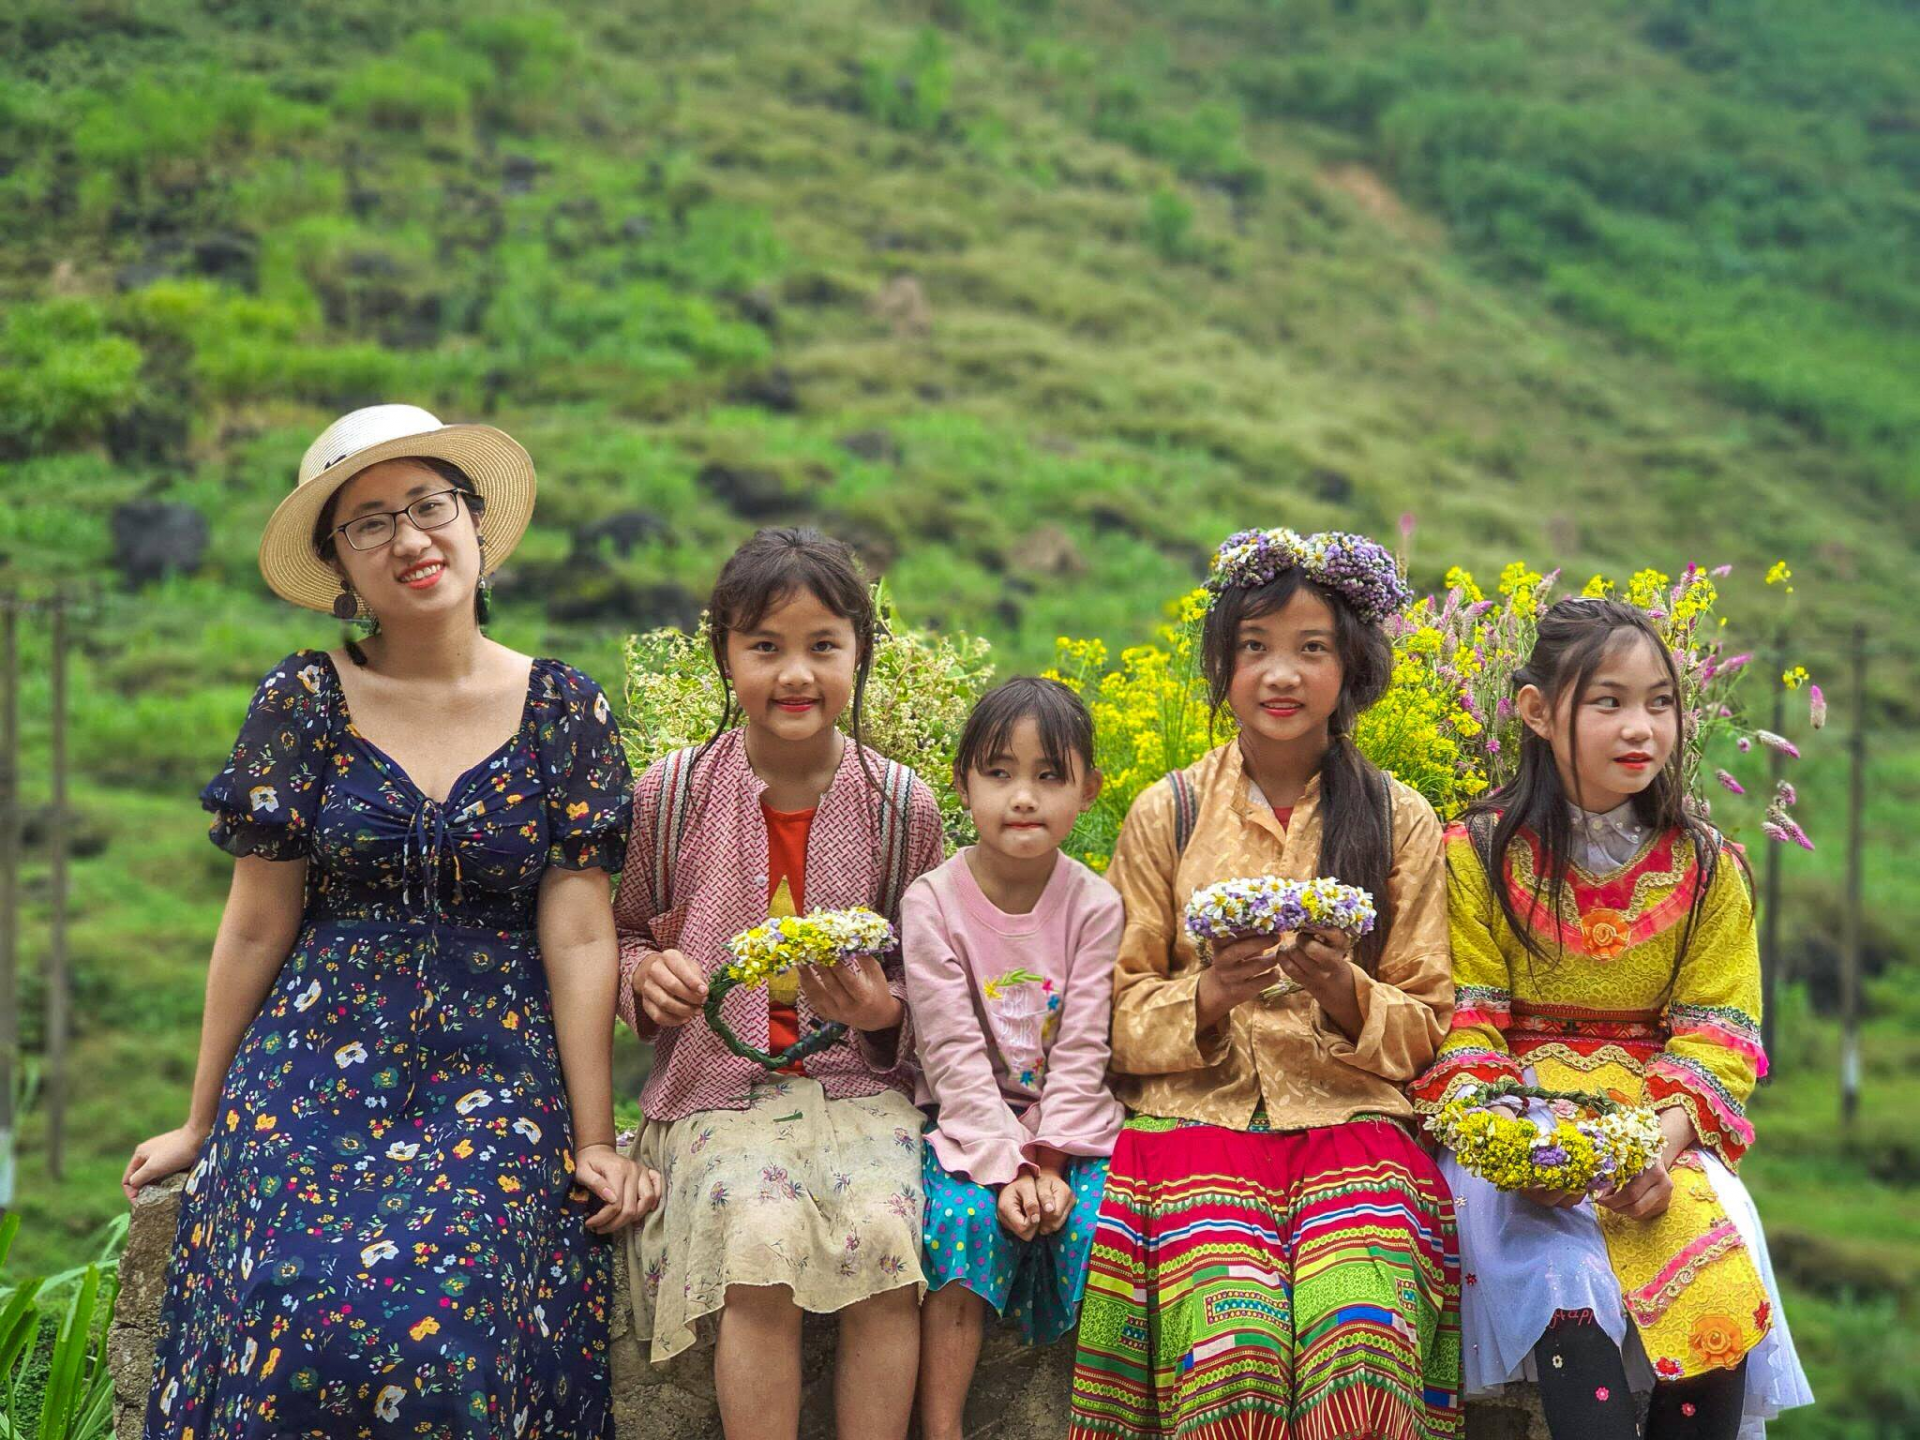 Quynh Trang with little children at Sapa. Photo: NVCC